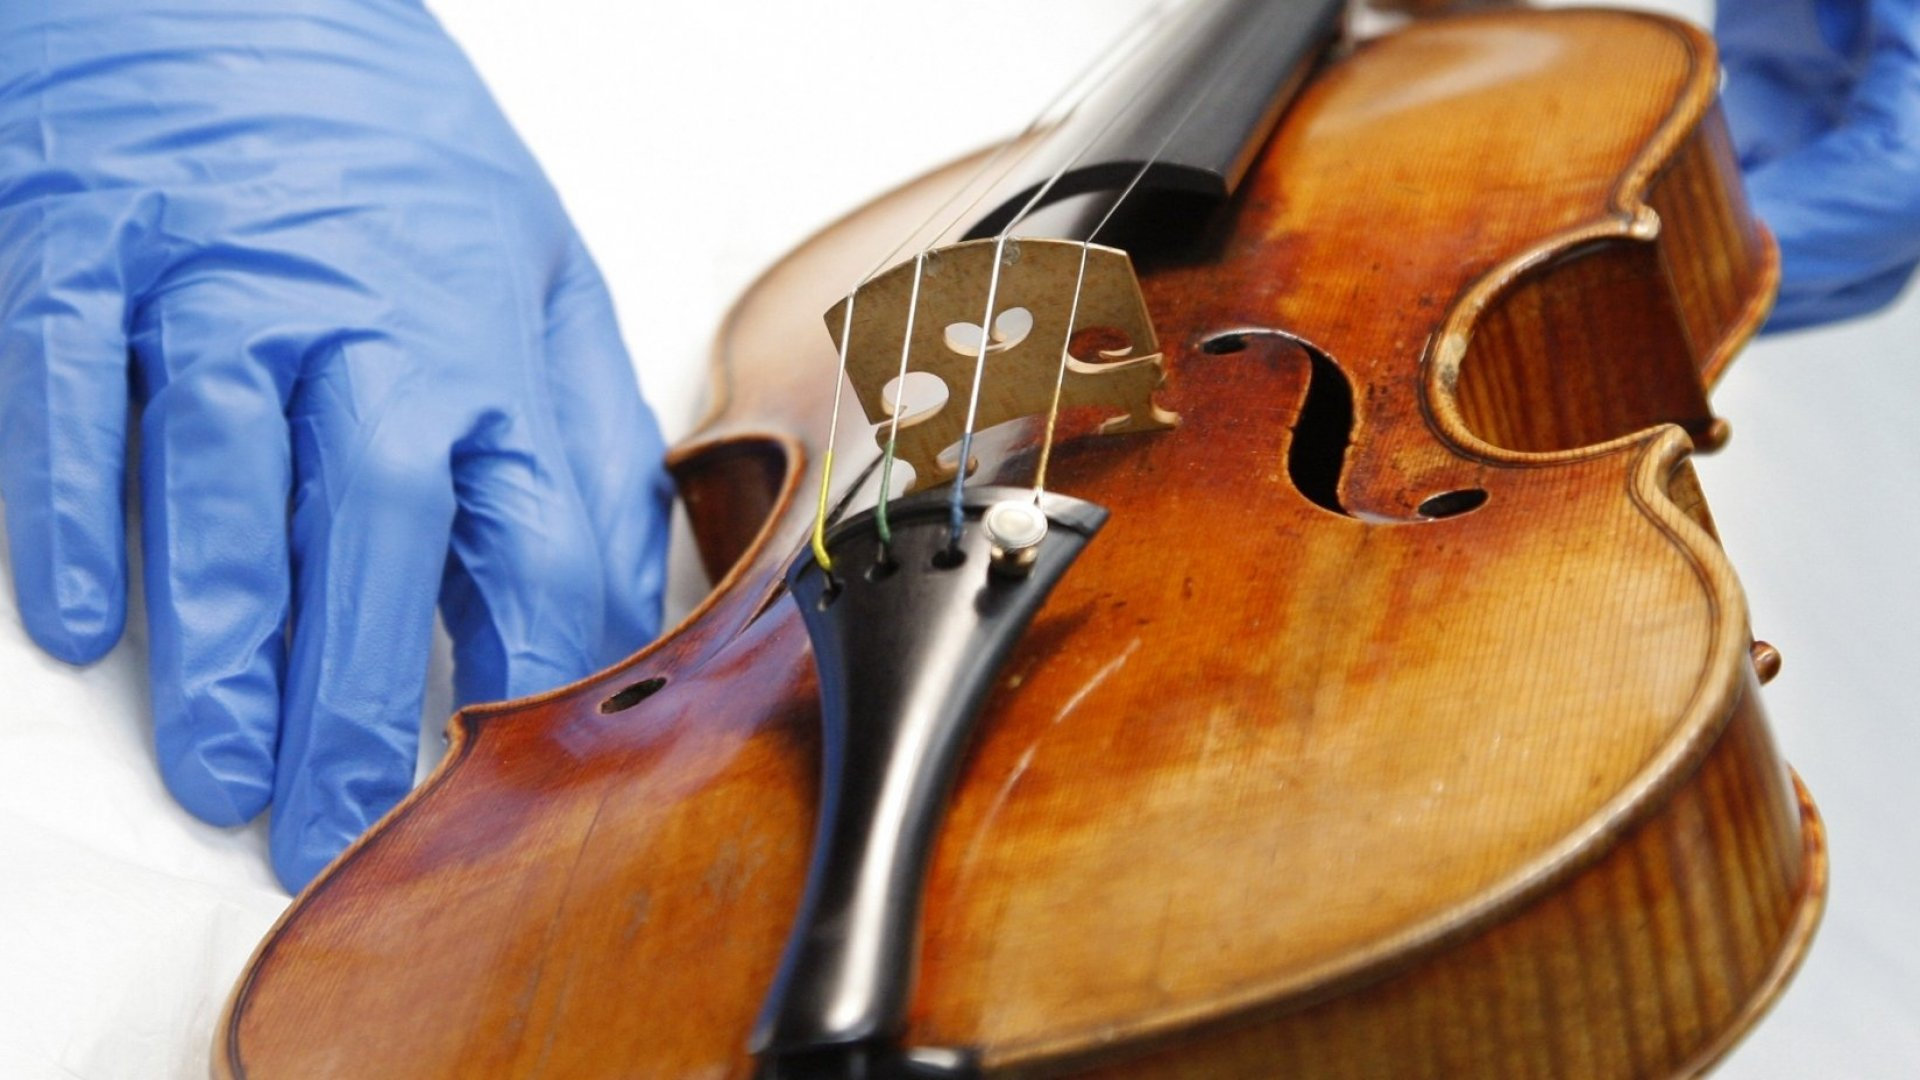 Violinists really care about their violins. Airlines sometimes don't.